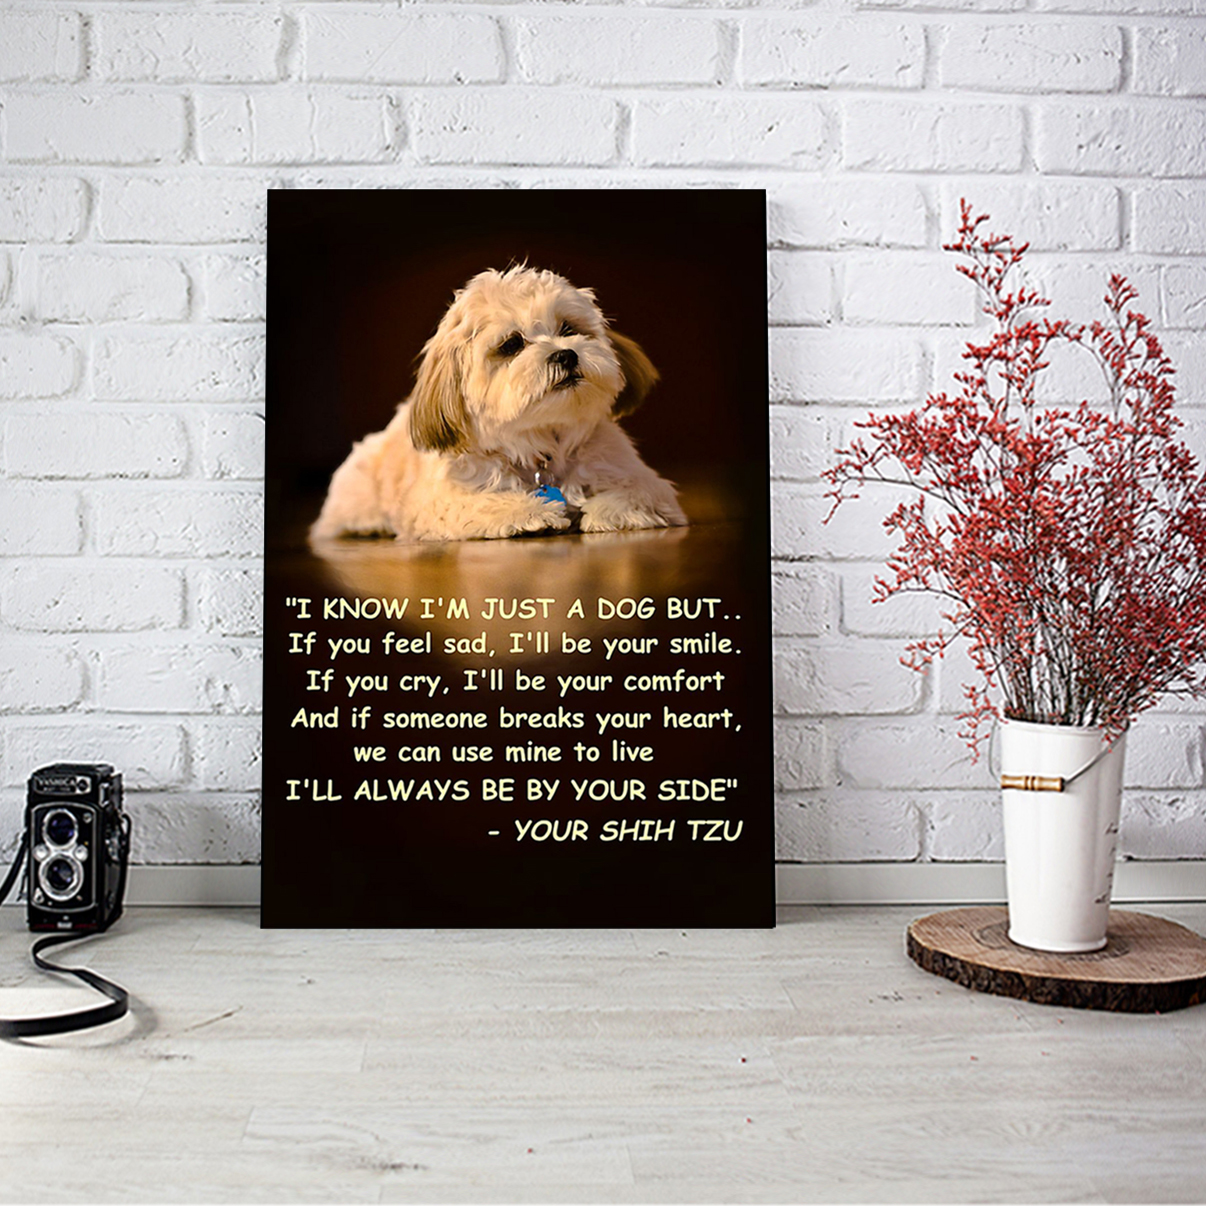 Shih tzu I know I'm just a dog but poster A1